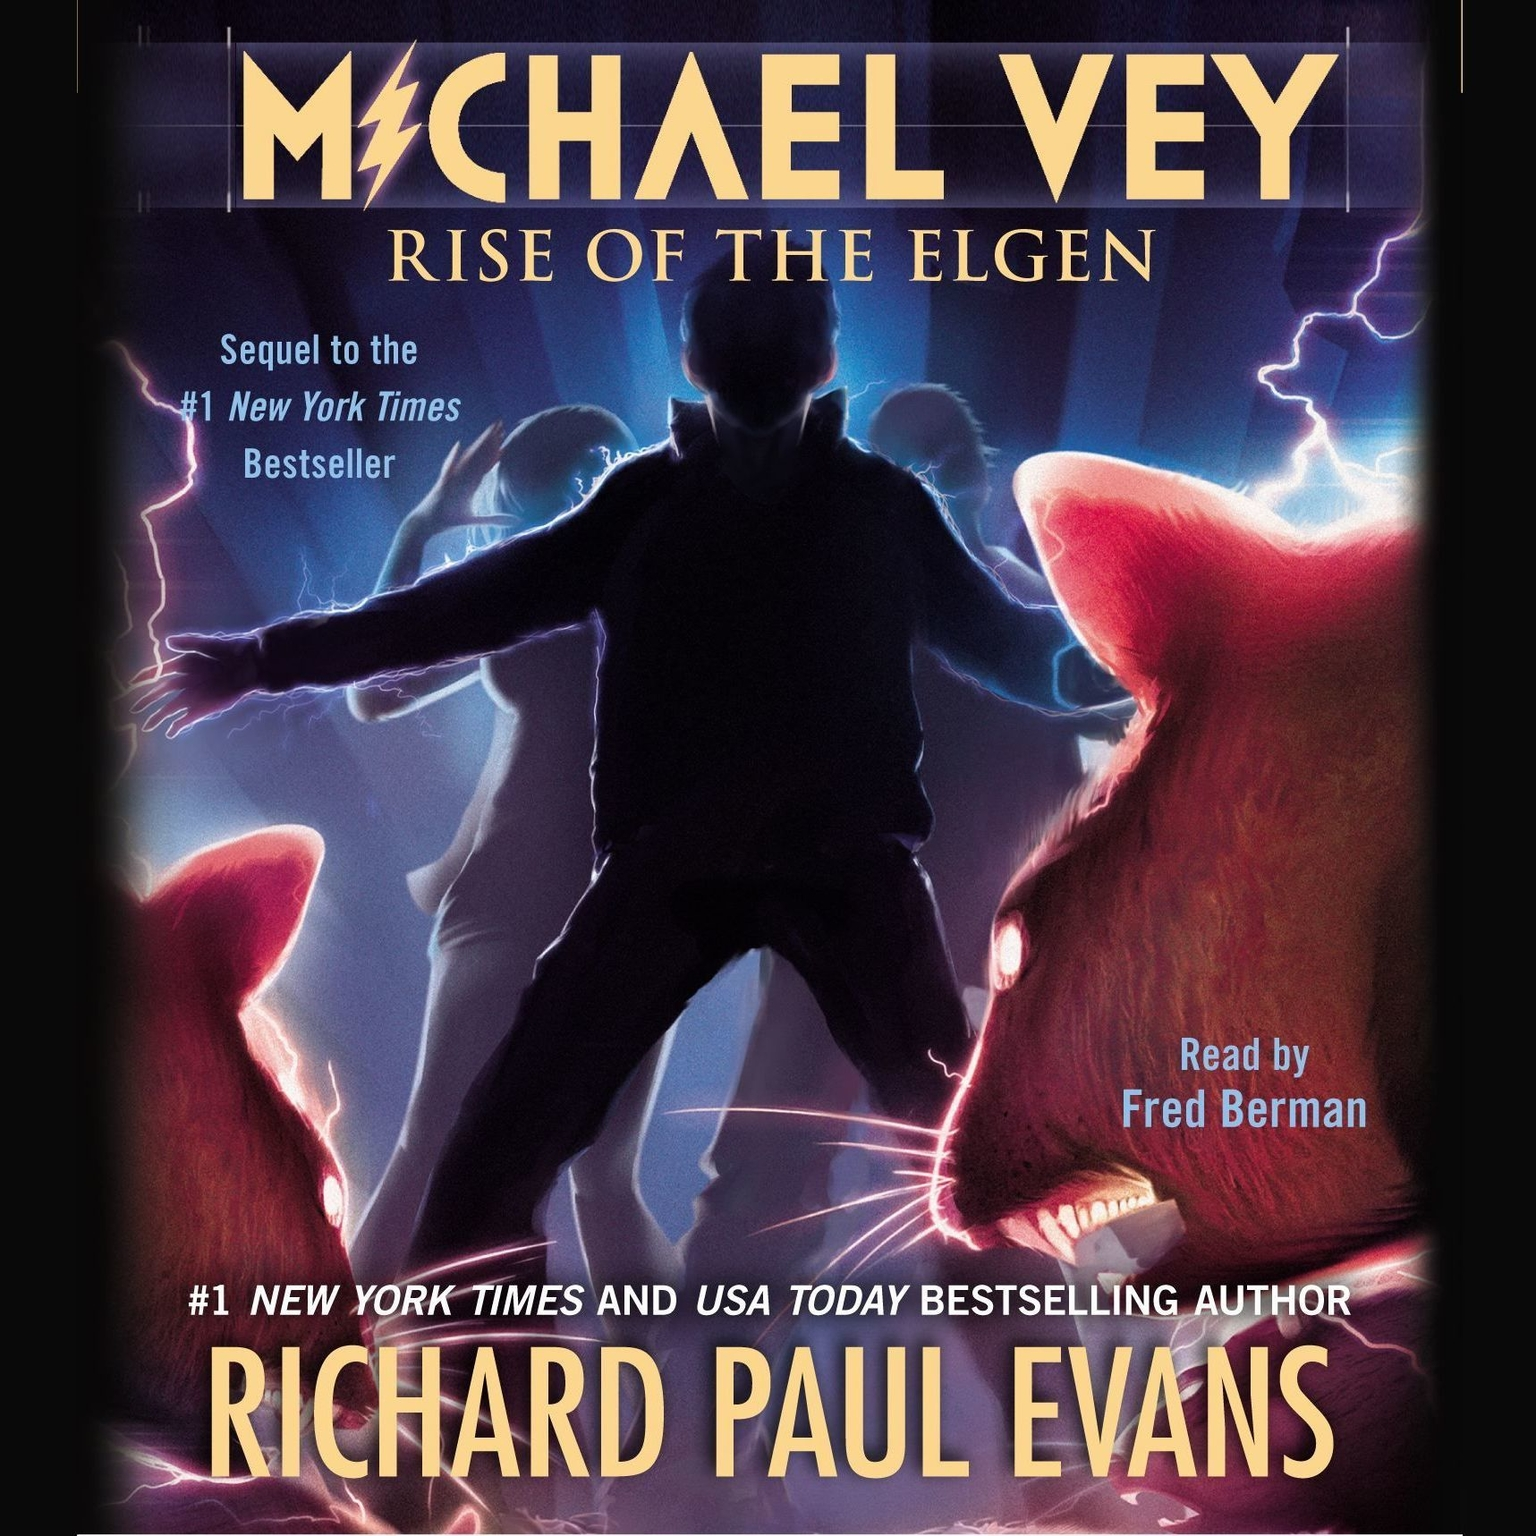 Printable Michael Vey 2: Rise of the Elgen Audiobook Cover Art